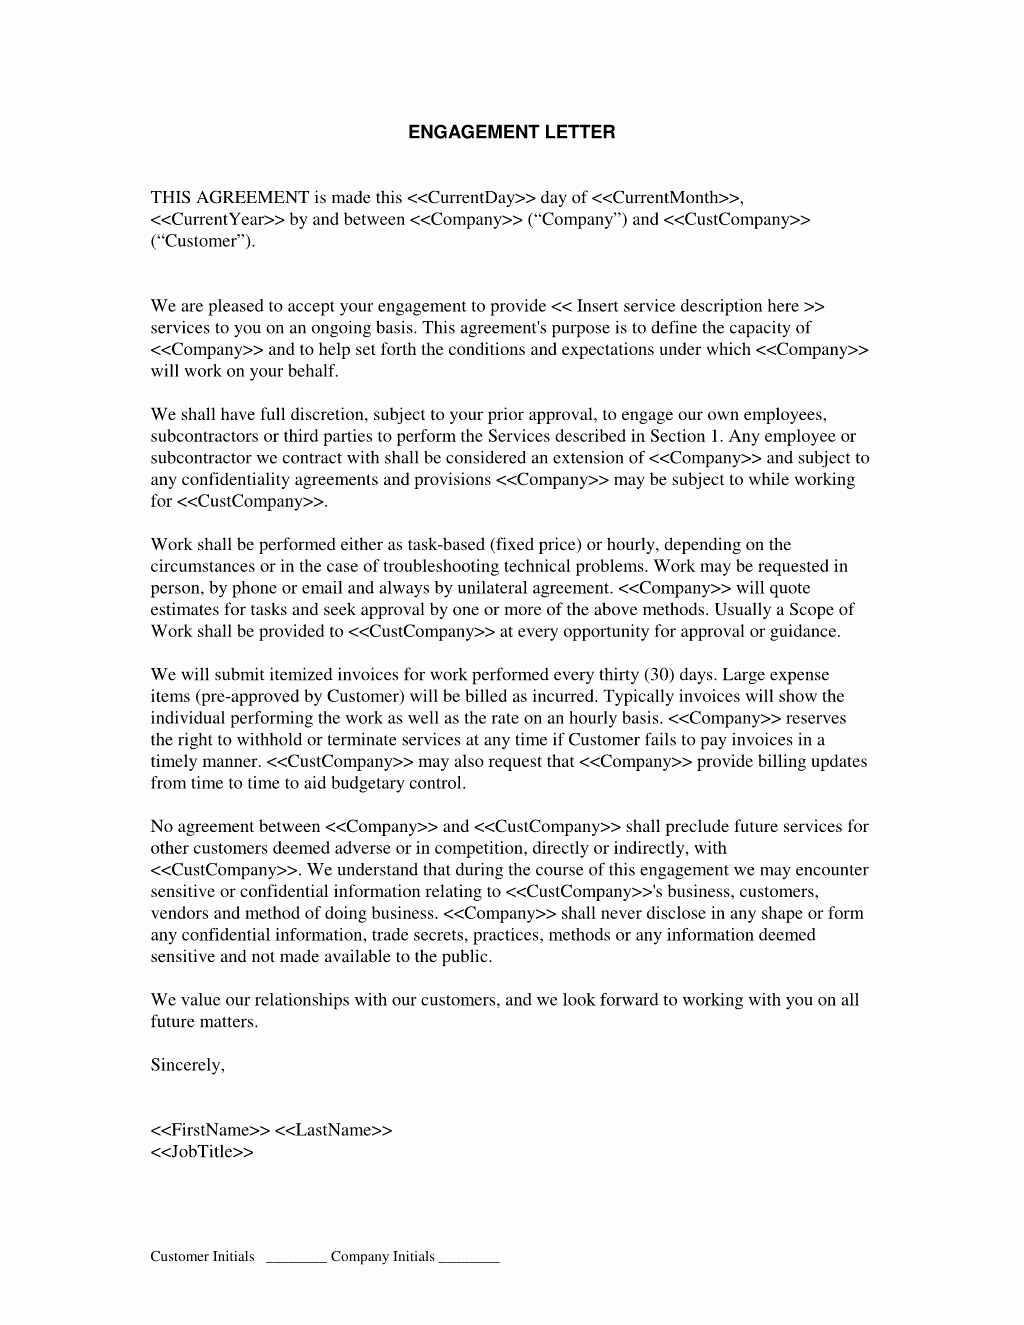 Business Valuation Engagement Letter Template Examples Letter